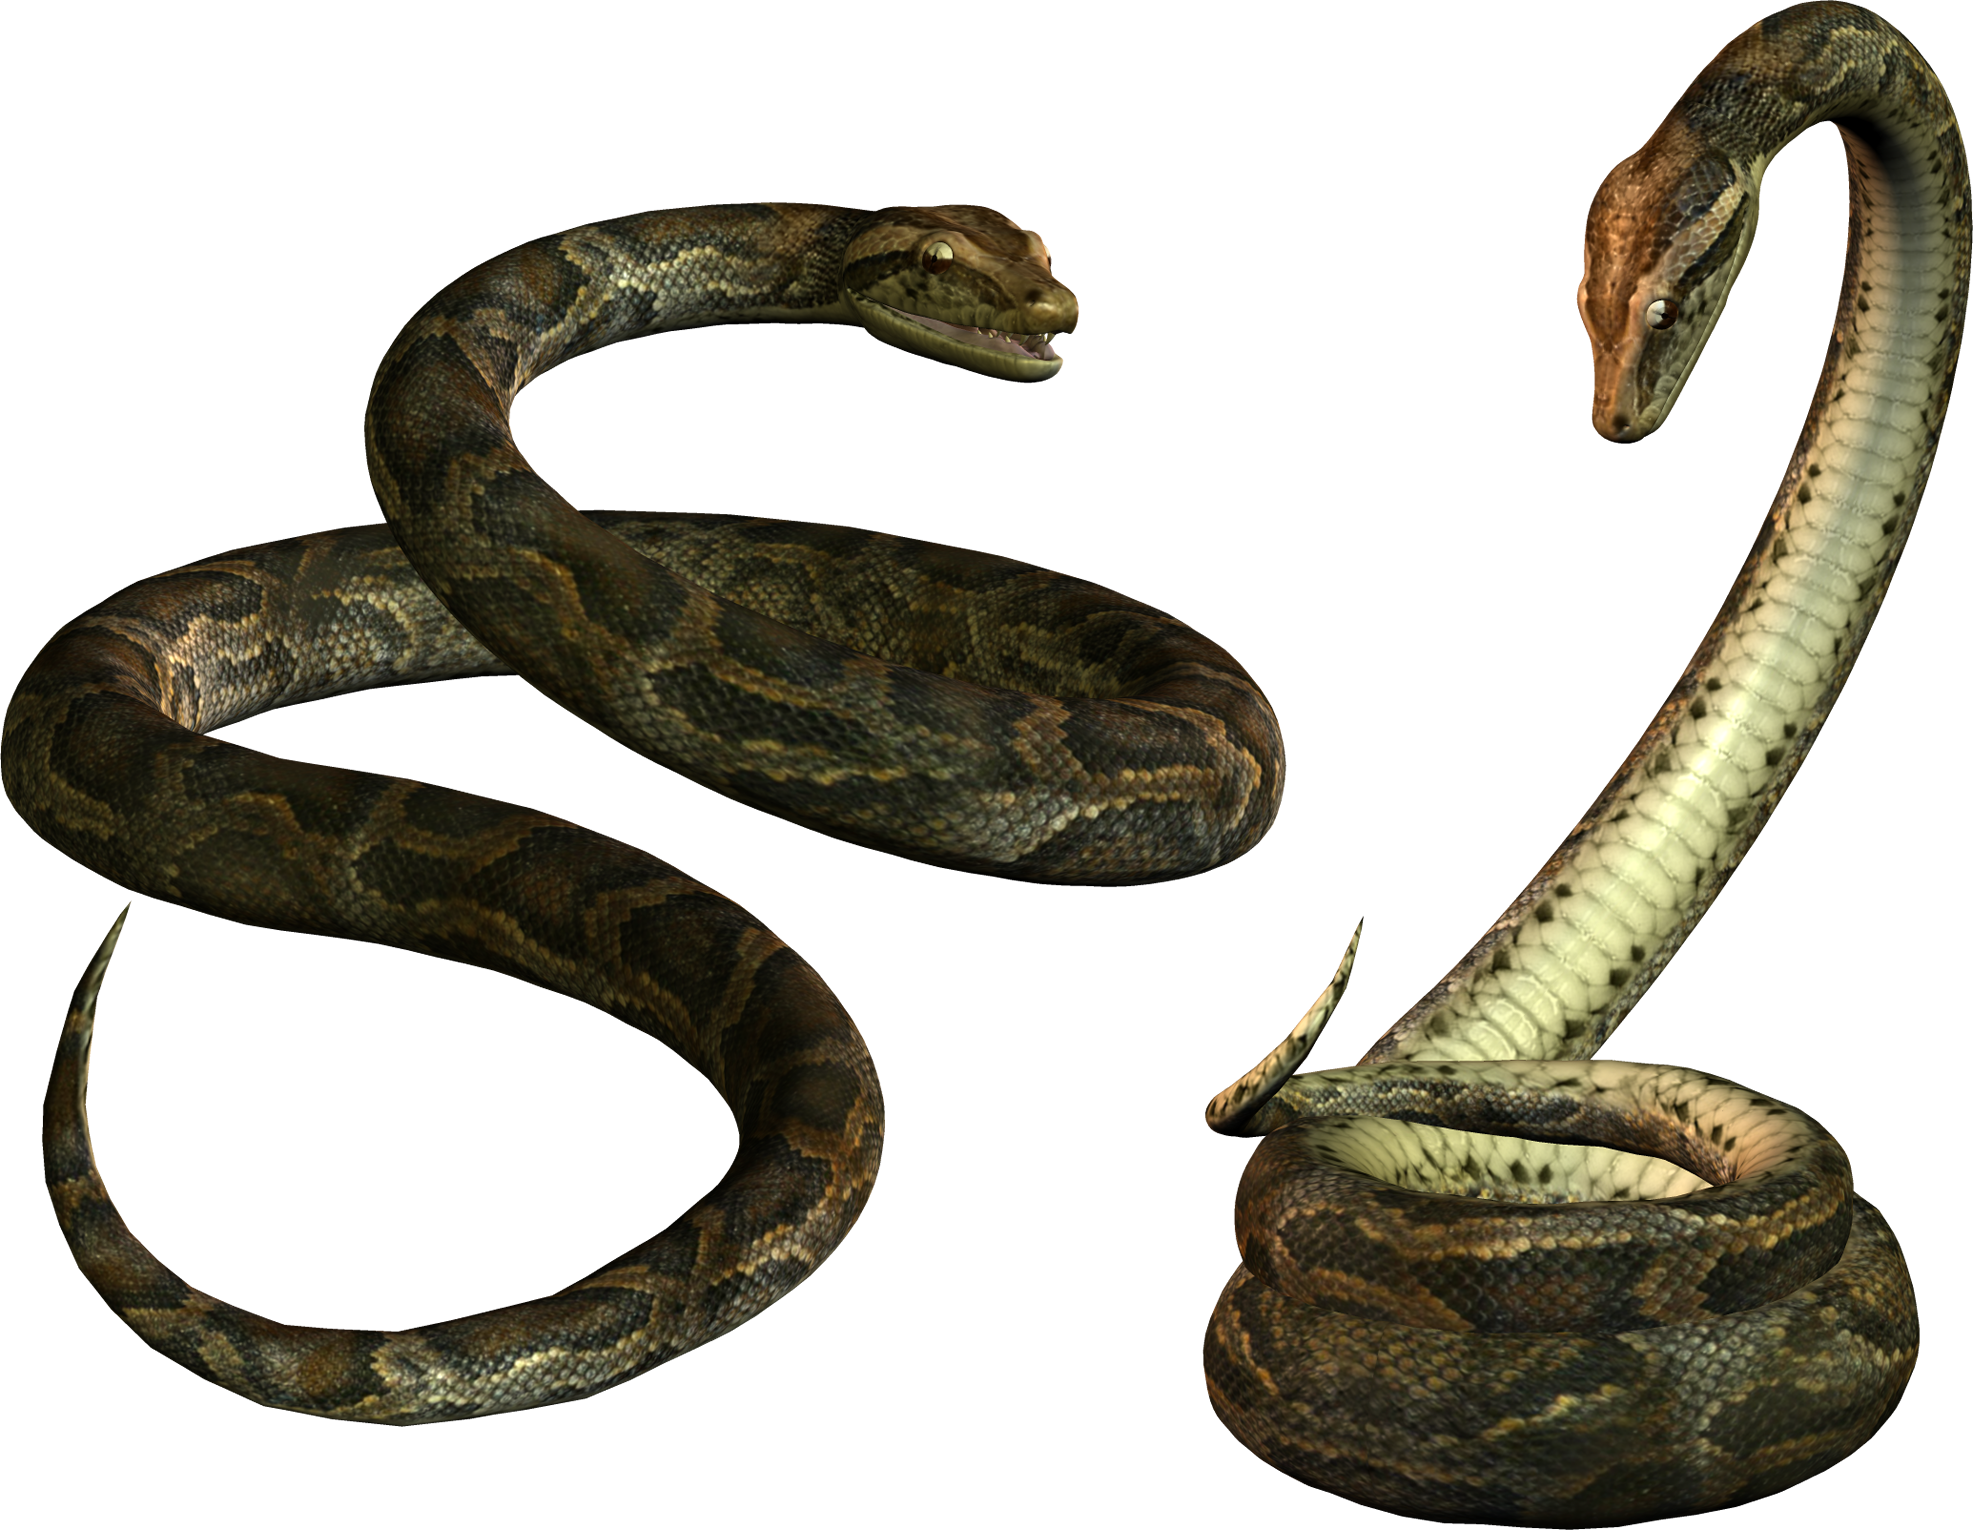 Two Snake PNG image #3634